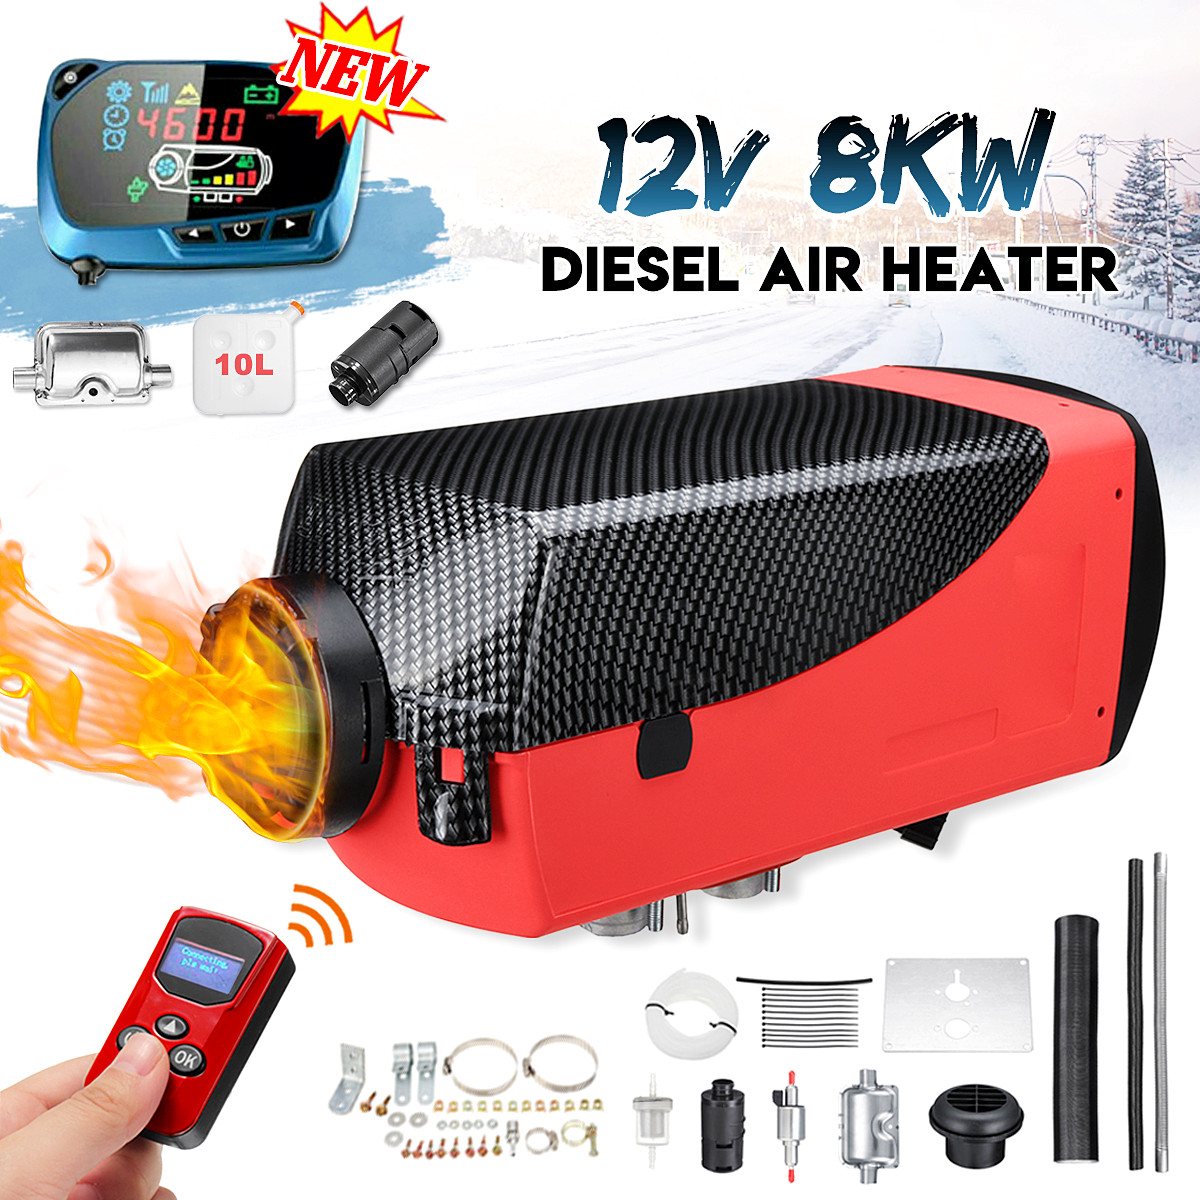 12V 8KW Air Diesel LCD Thermostat Remote Control Silencer Parking Car Heater For RV Truck Boat Trailer Heating